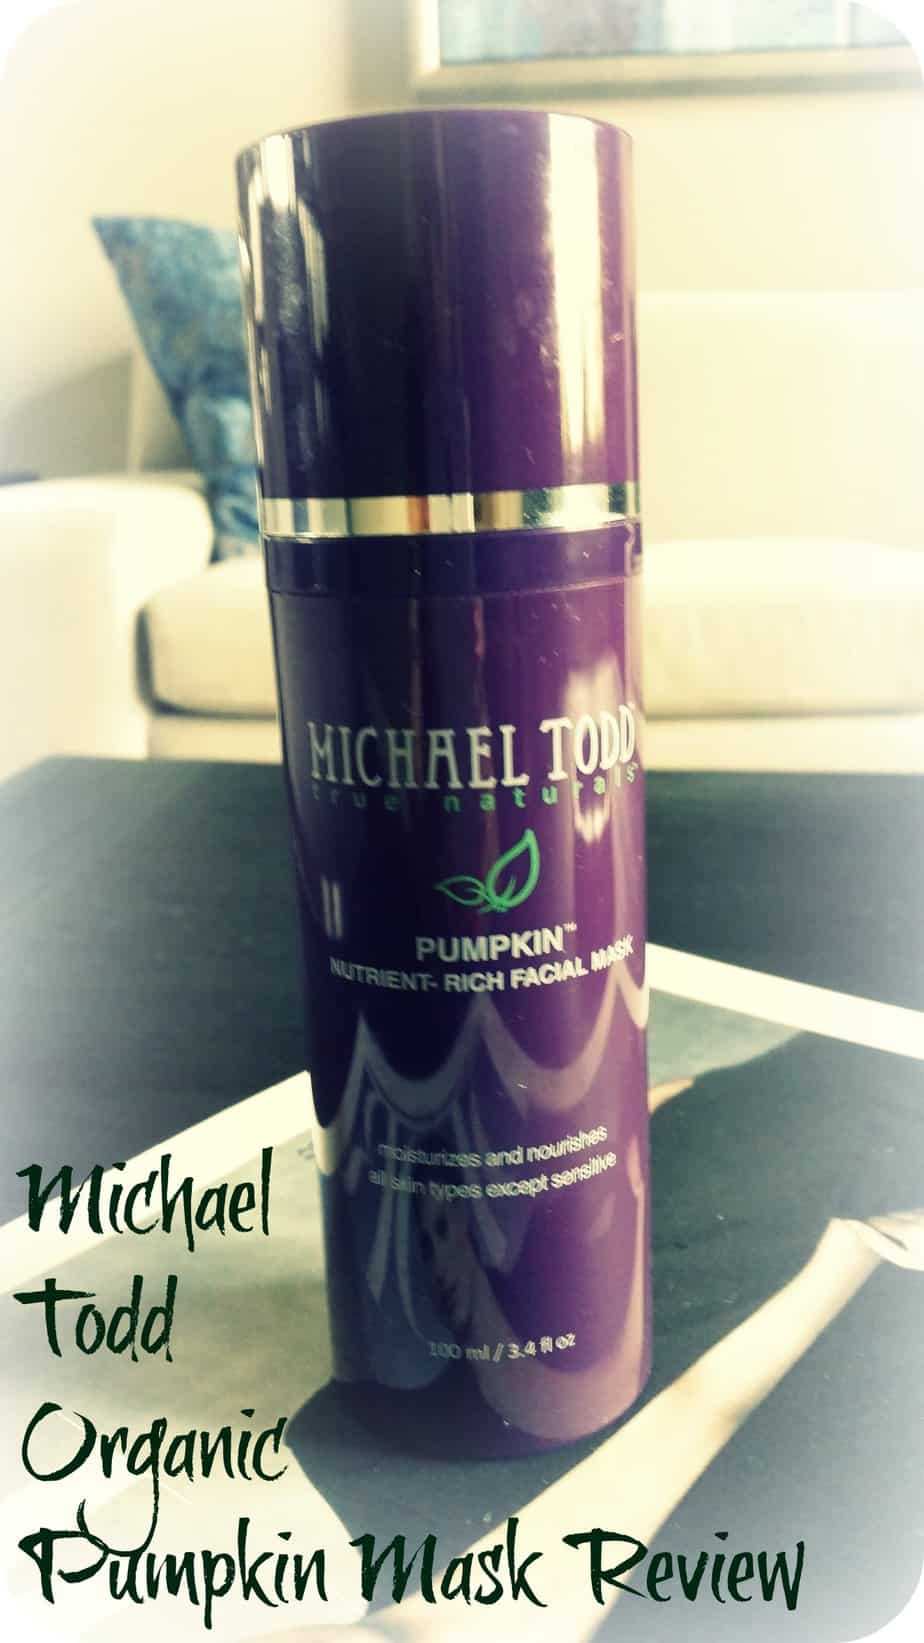 Michael Todd Organic Pumpkin Mask Review